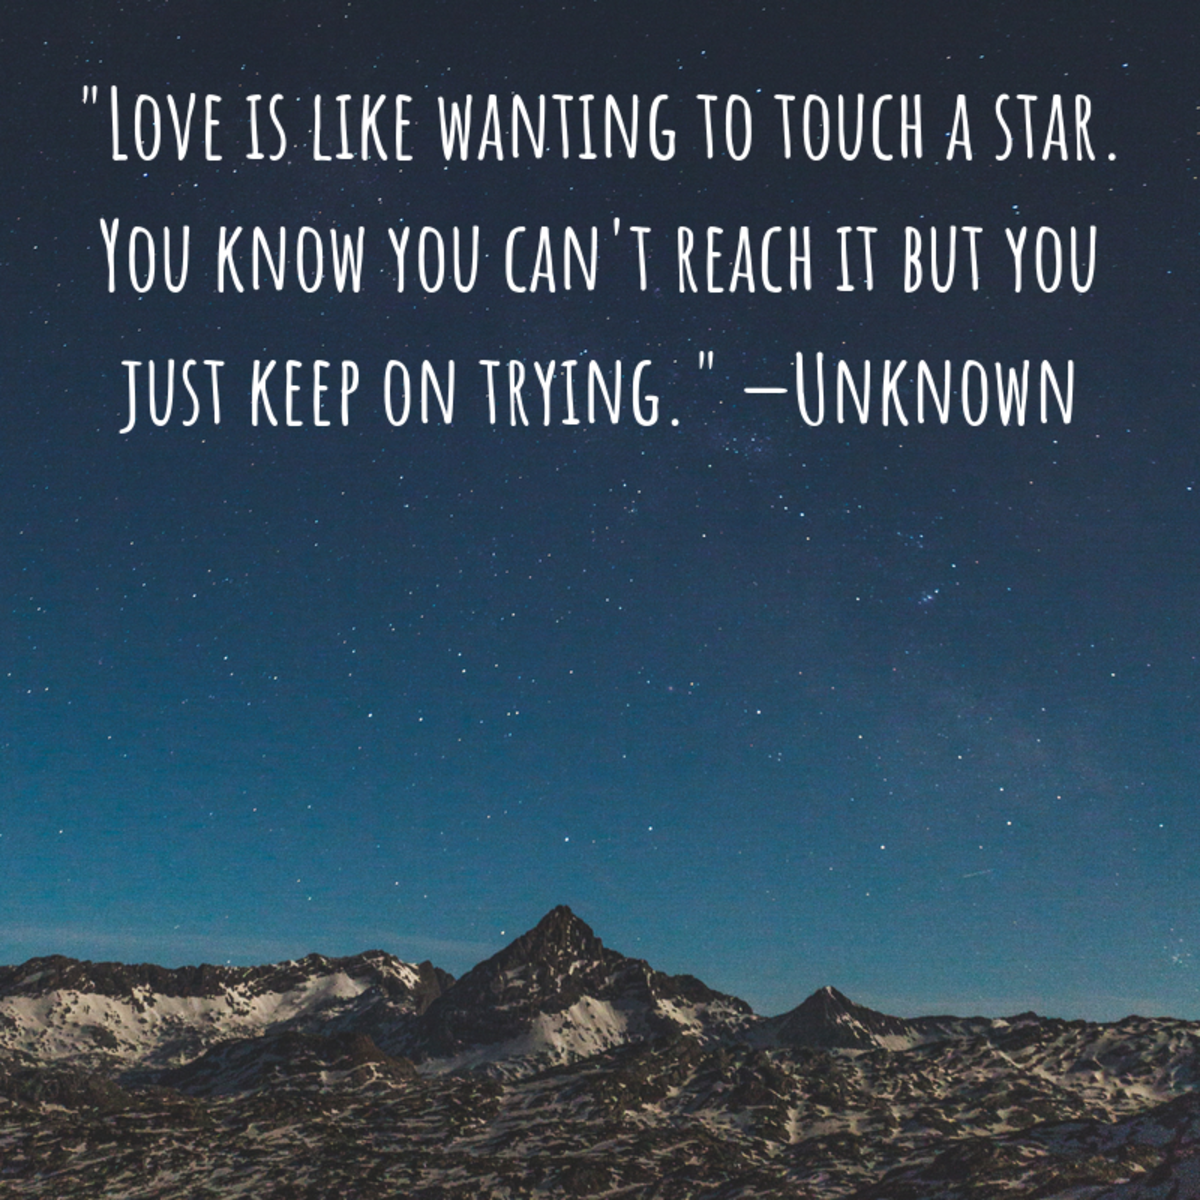 """""""Love is like wanting to touch a star. You know you can't reach it but you just keep on trying."""" —Unknown"""